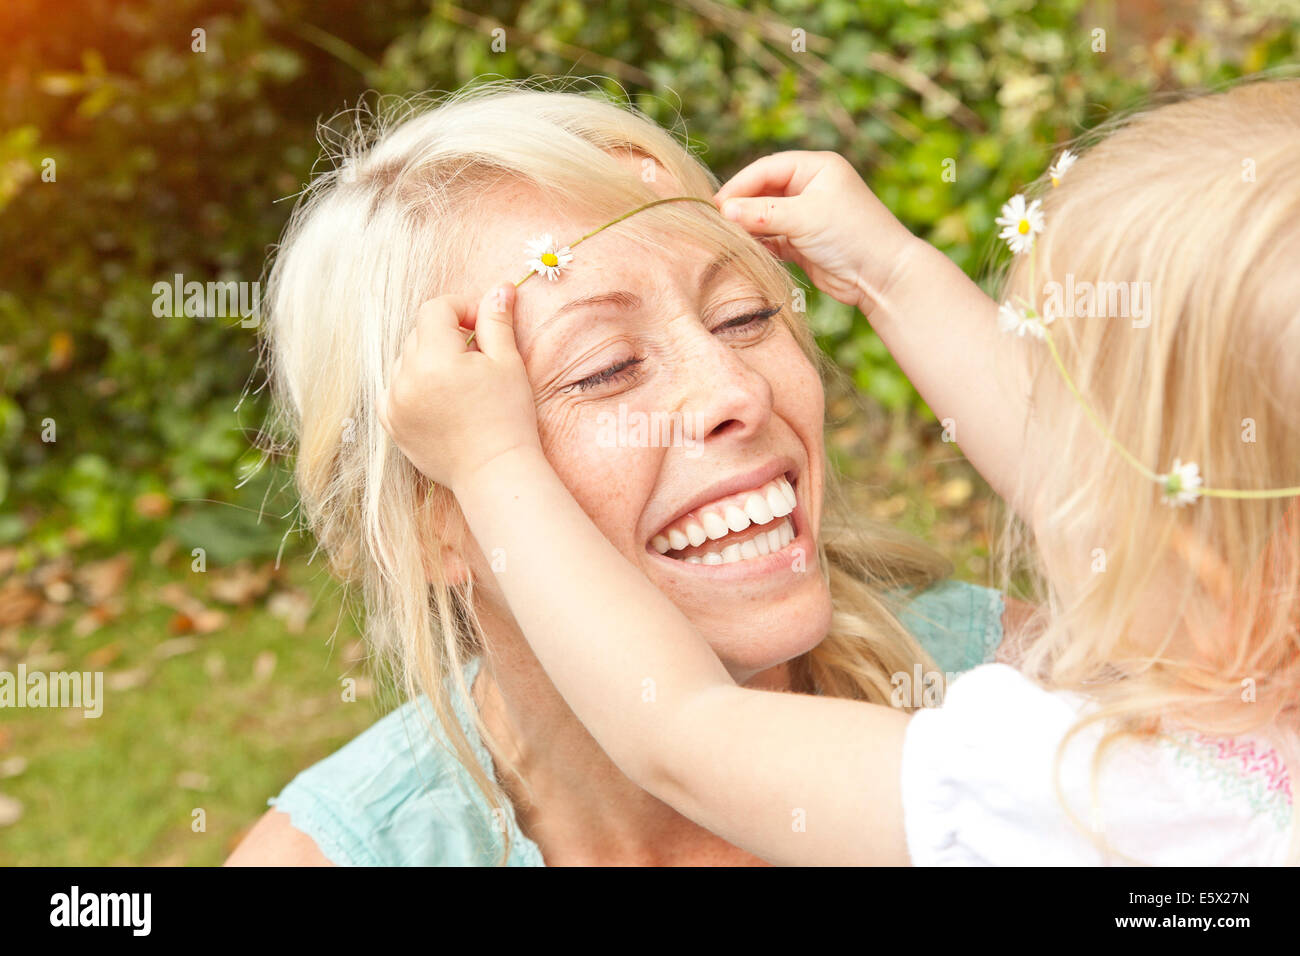 Close up of female toddler placing daisy chain in mother's hair in garden - Stock Image